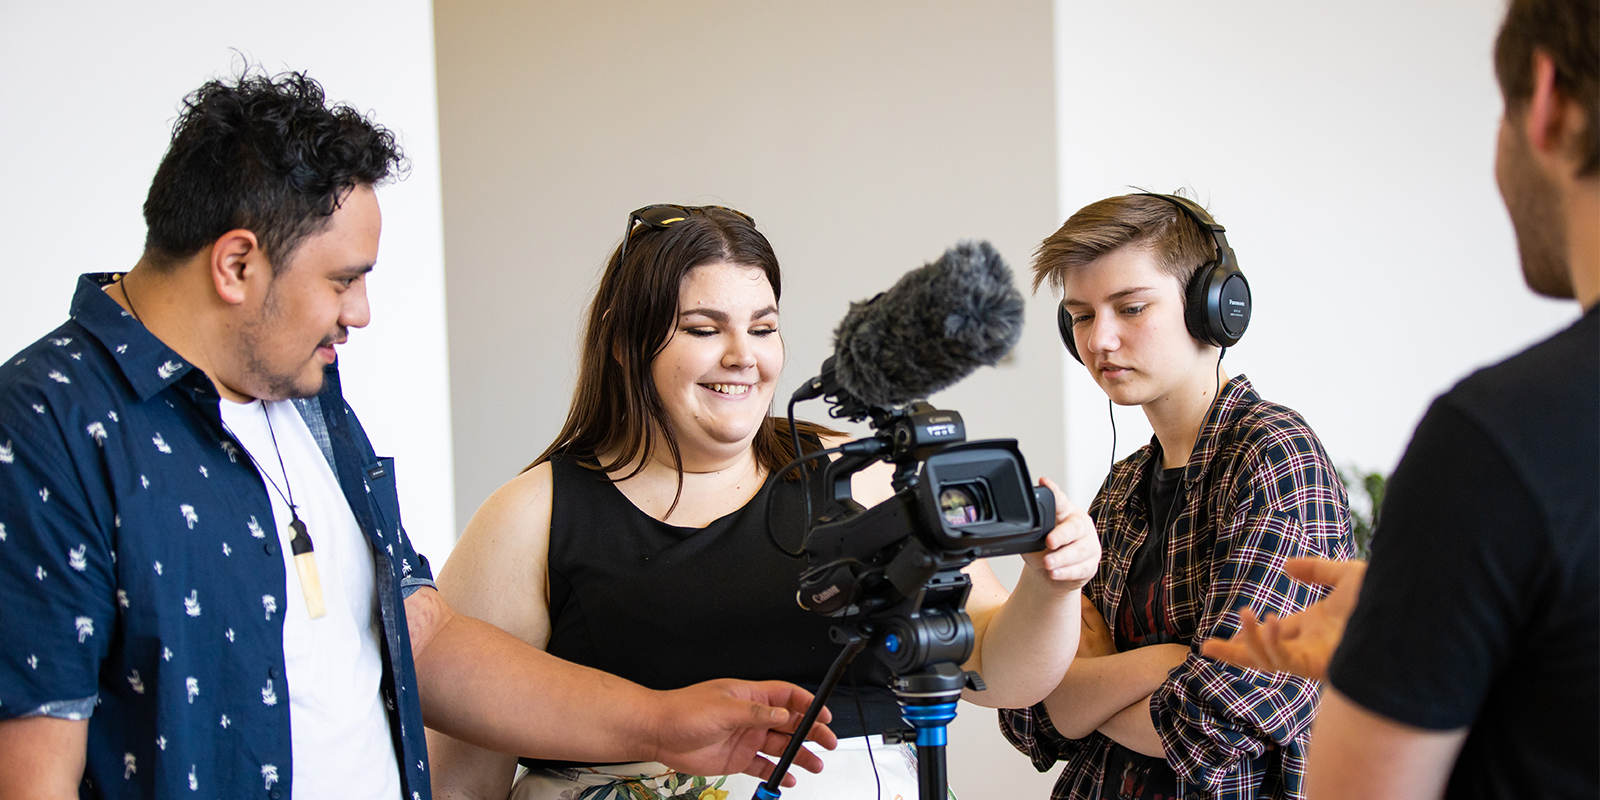 Comms students help out on photoshoot_Stephen Barker